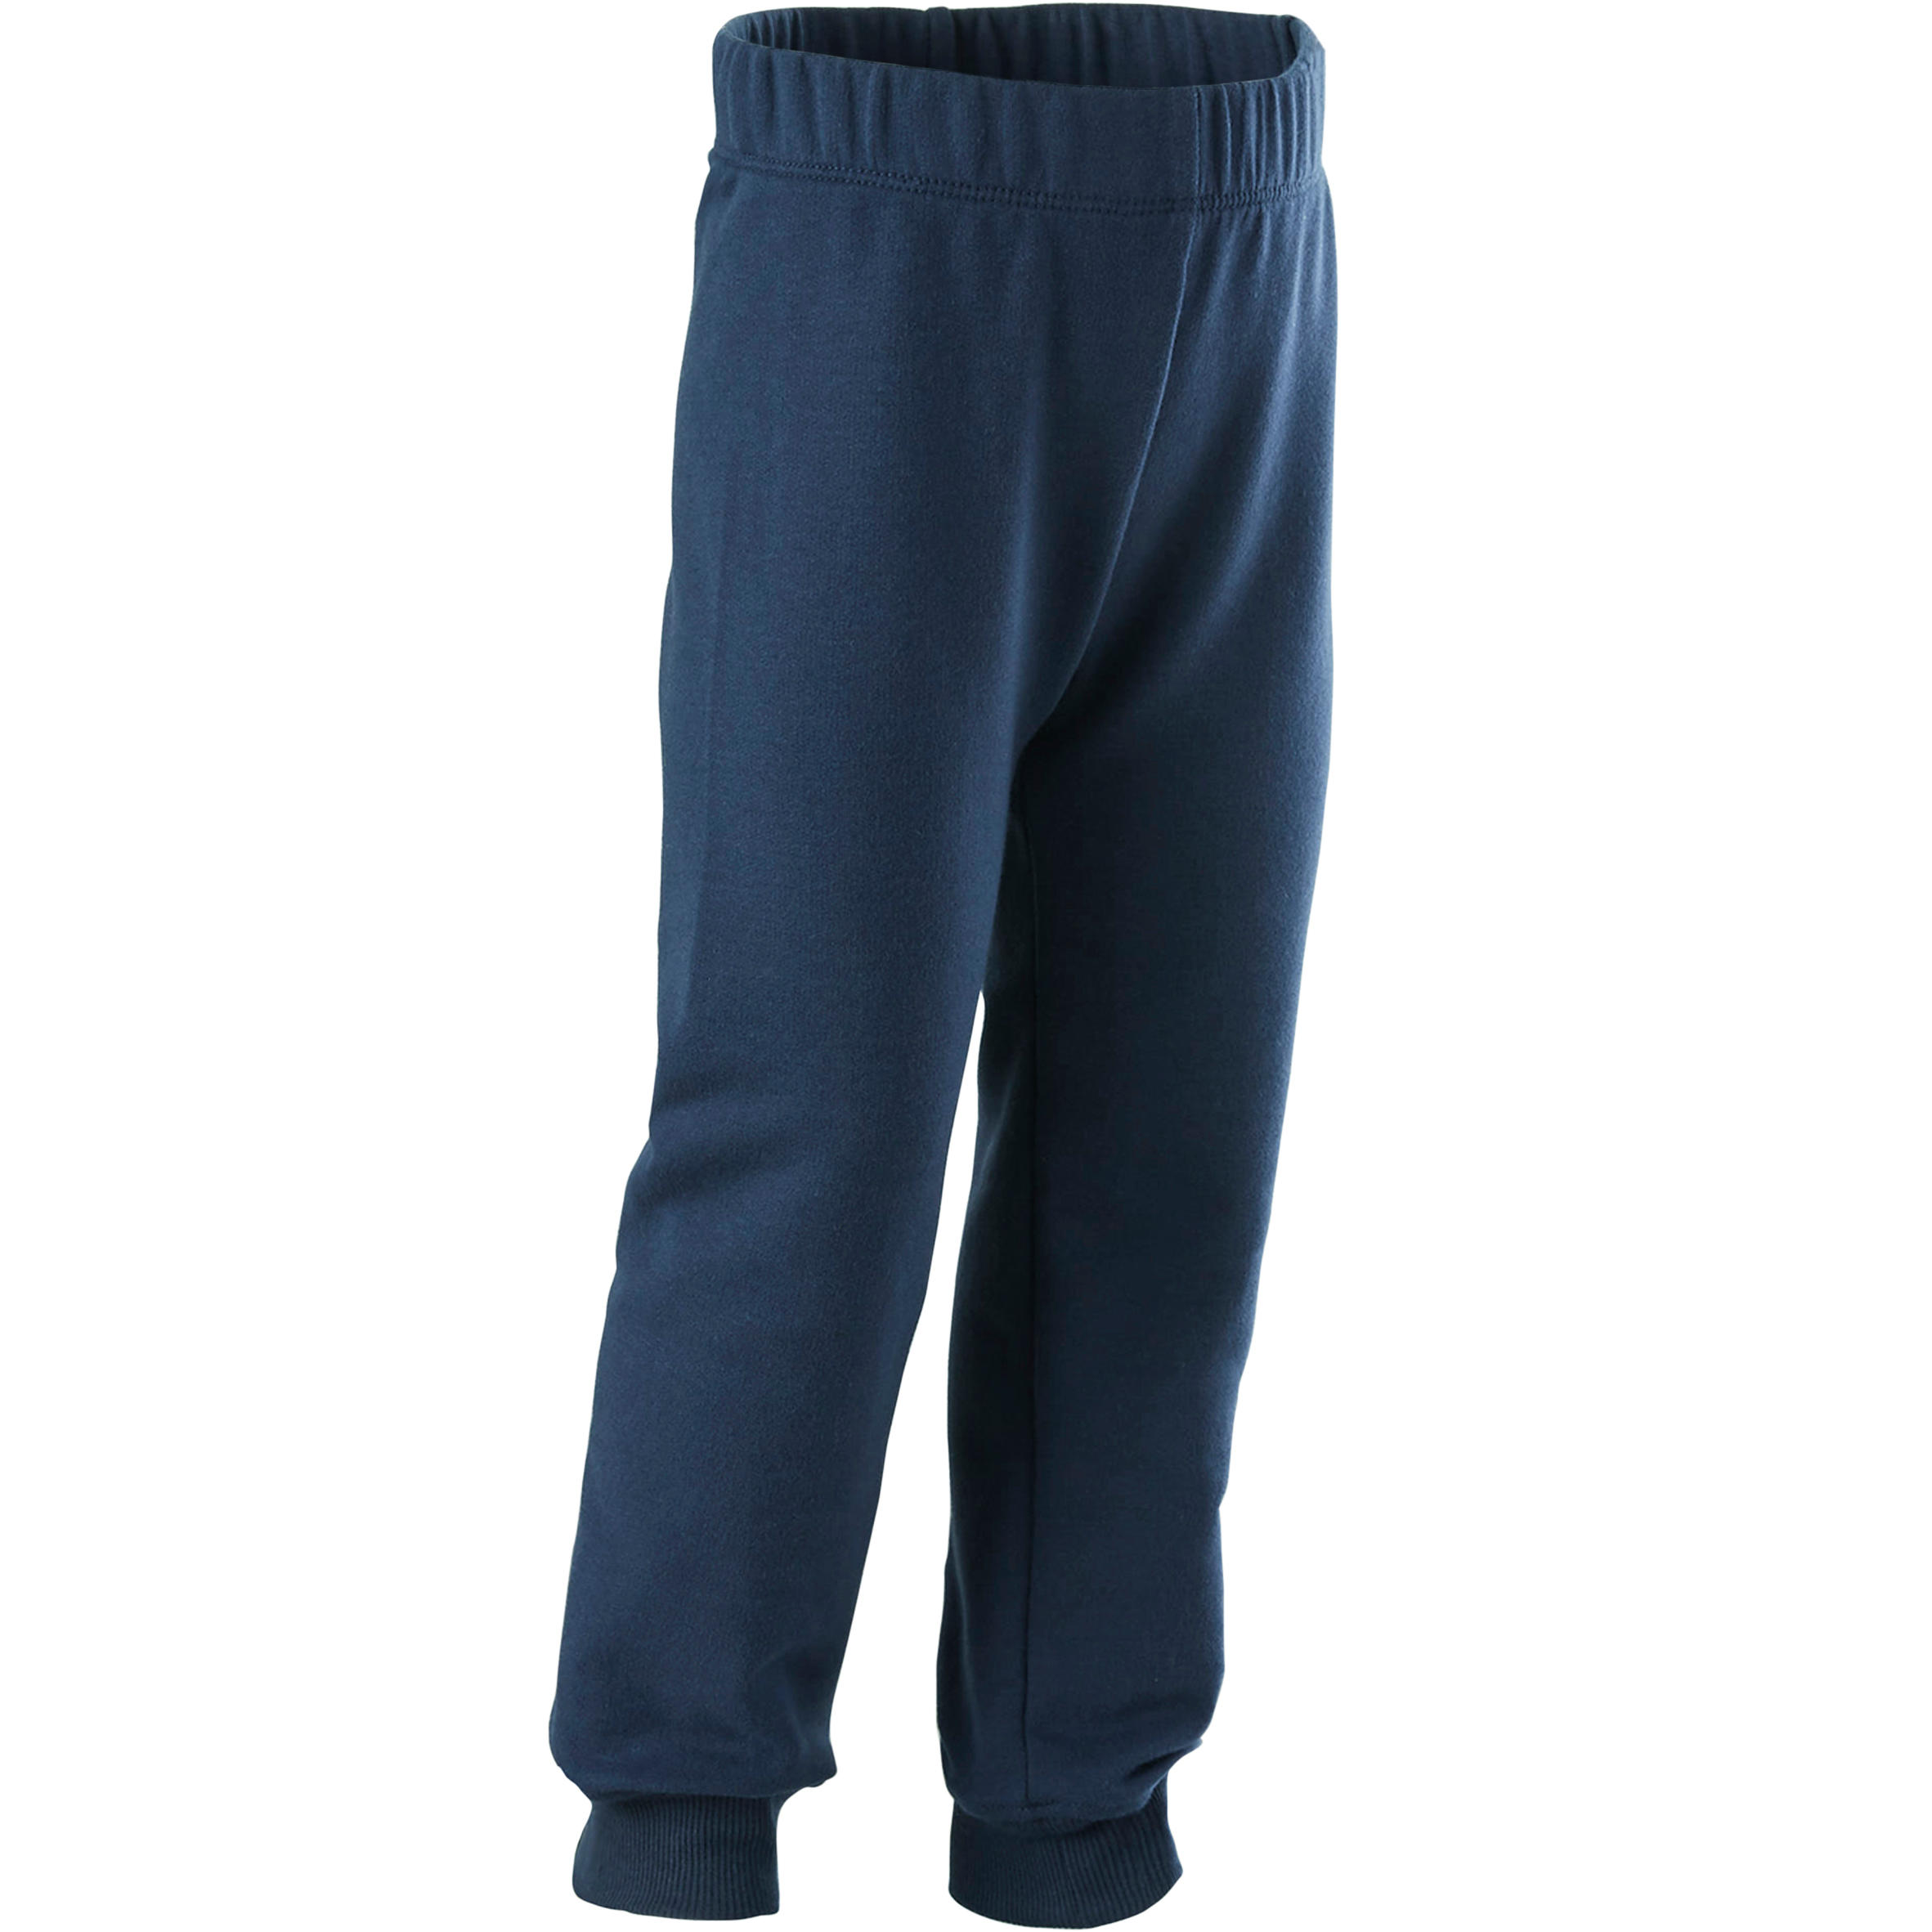 Pantalon 100 Baby gym Copii